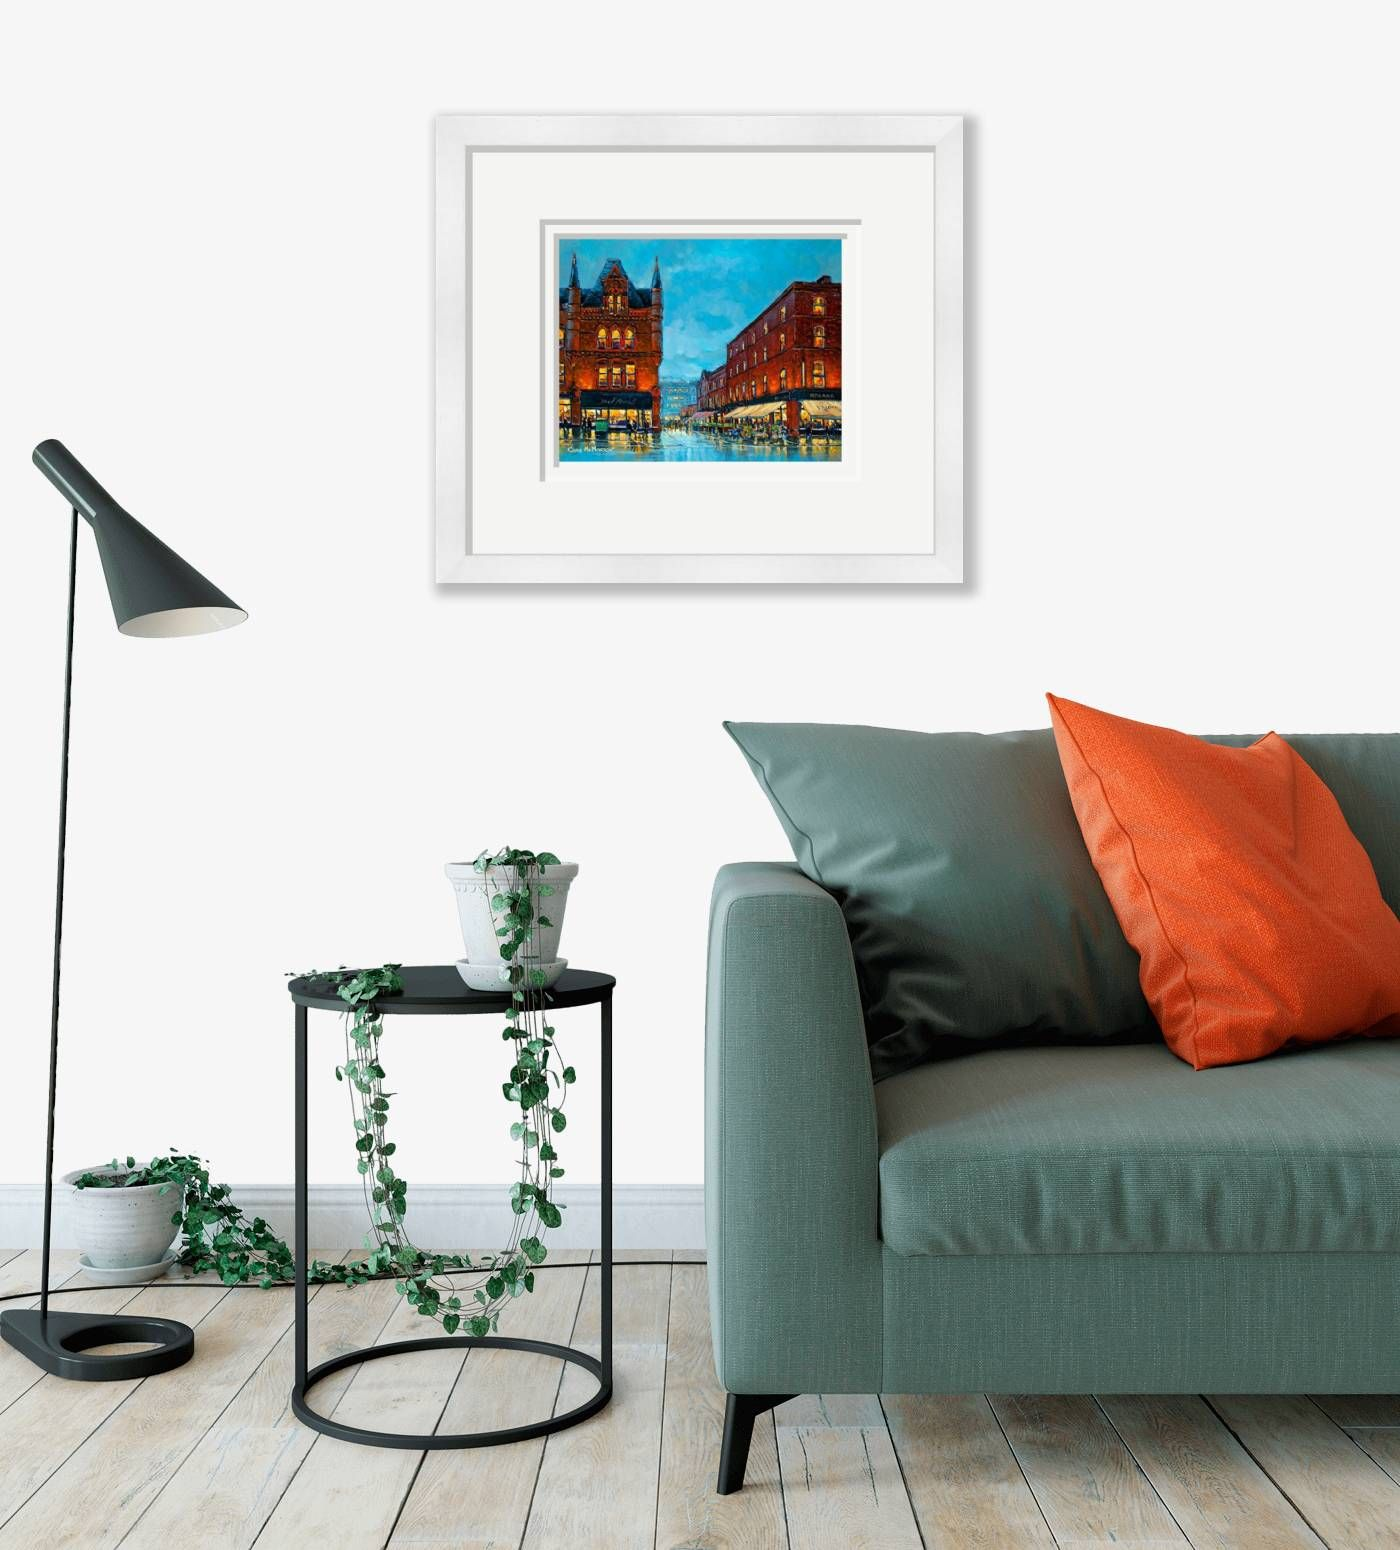 Large framed - Fade Street, Dublin - 540 by Chris McMorrow